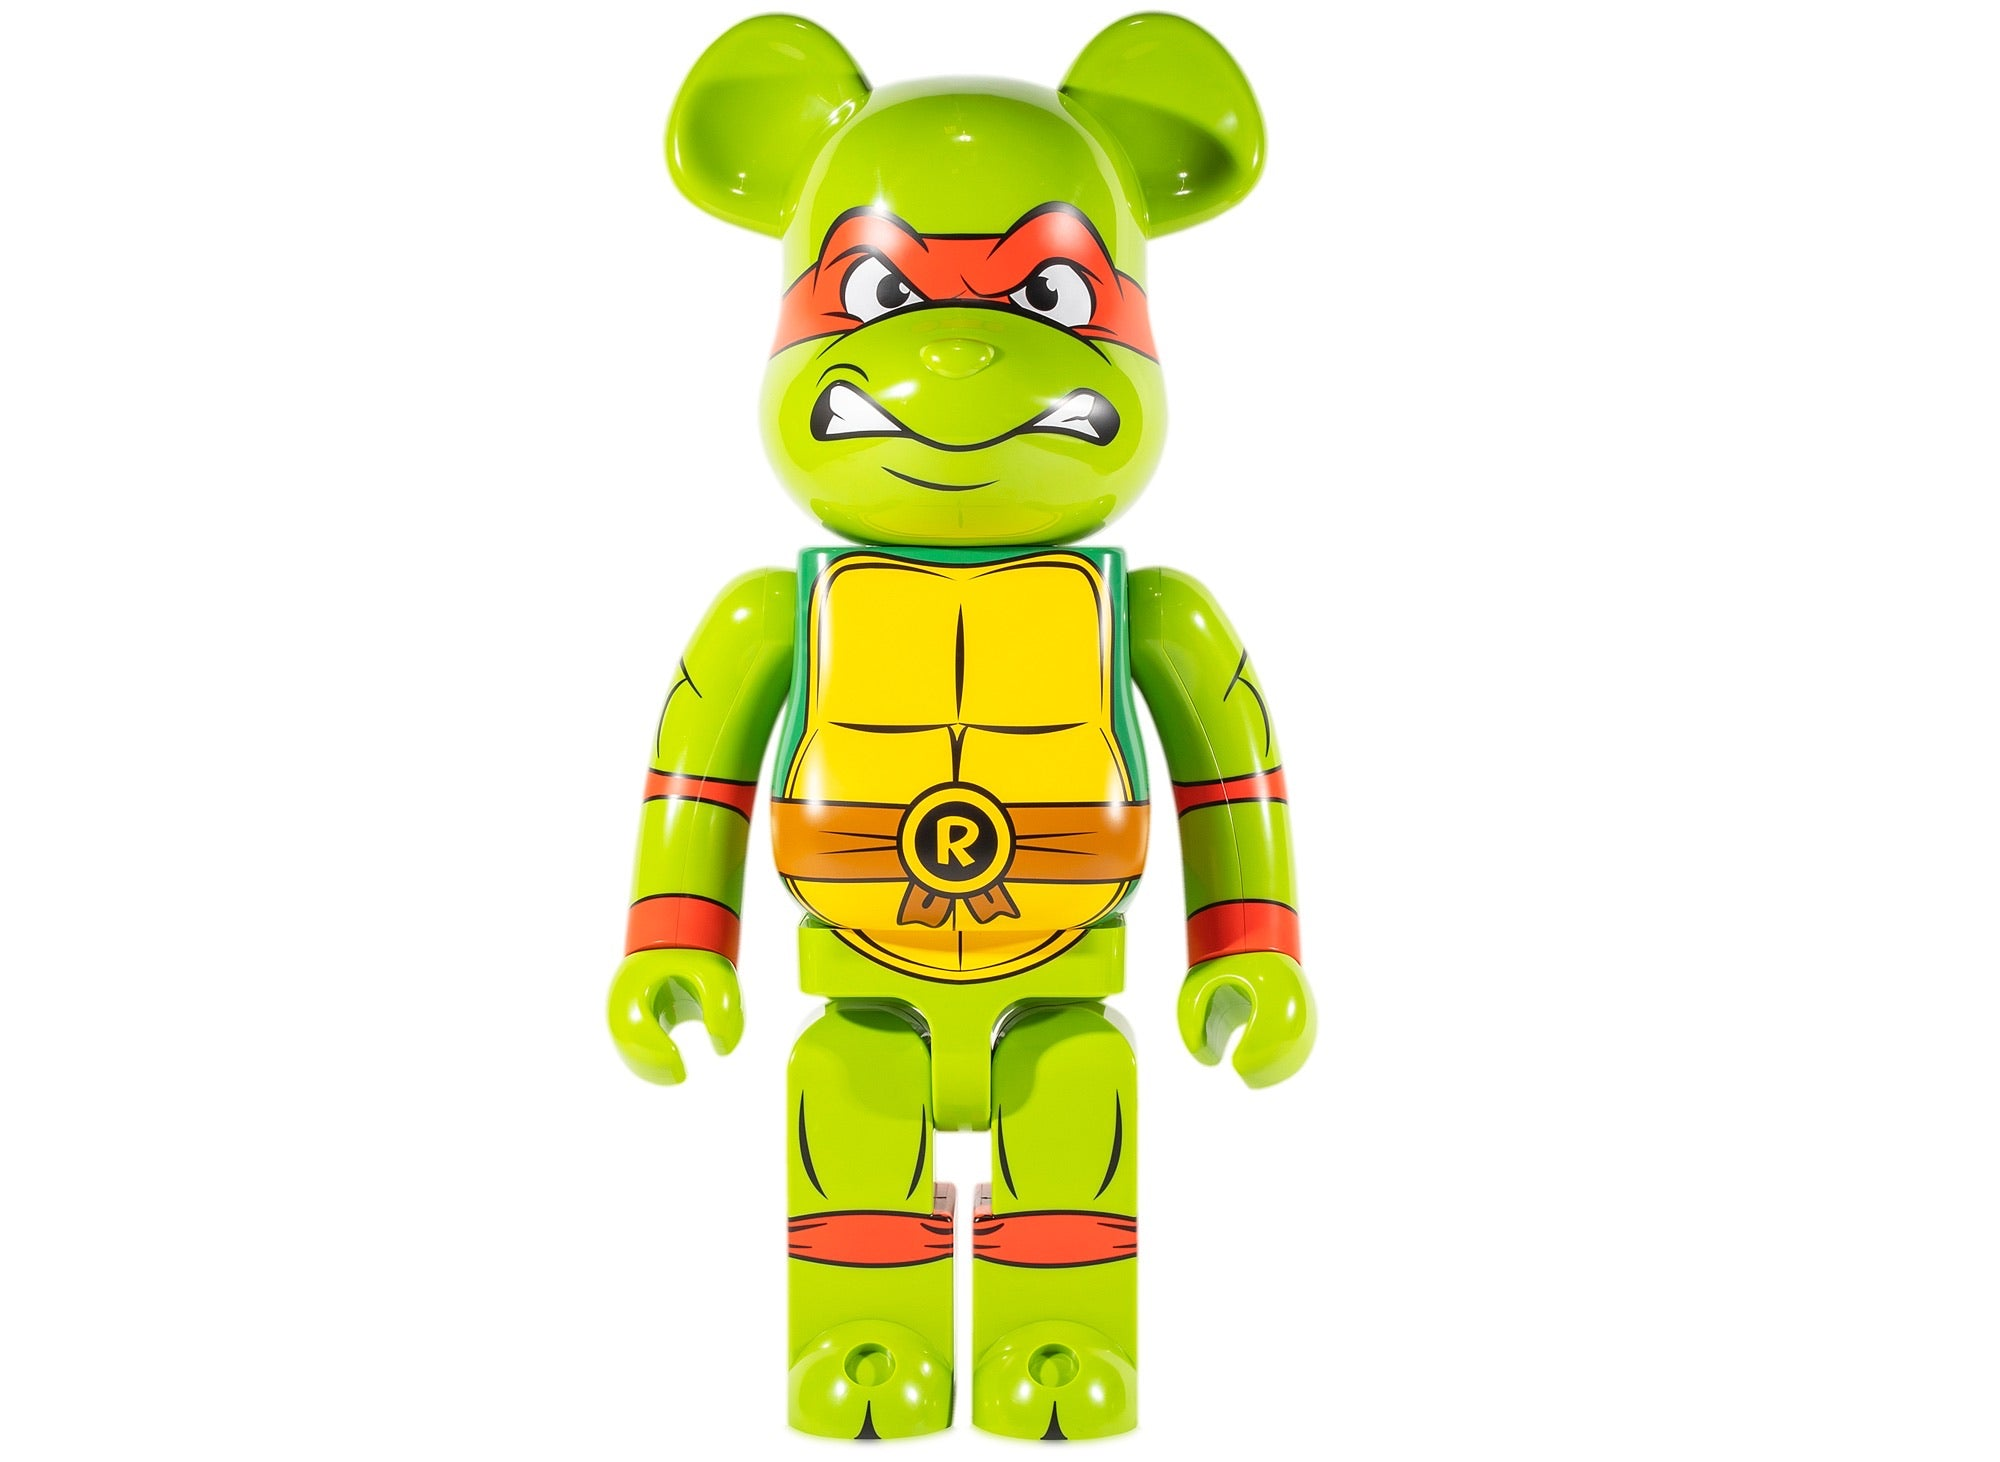 Medicom Toy BE@RBRICK Teenage Mutant Ninja Turtles 'Raphael' 1000% xld